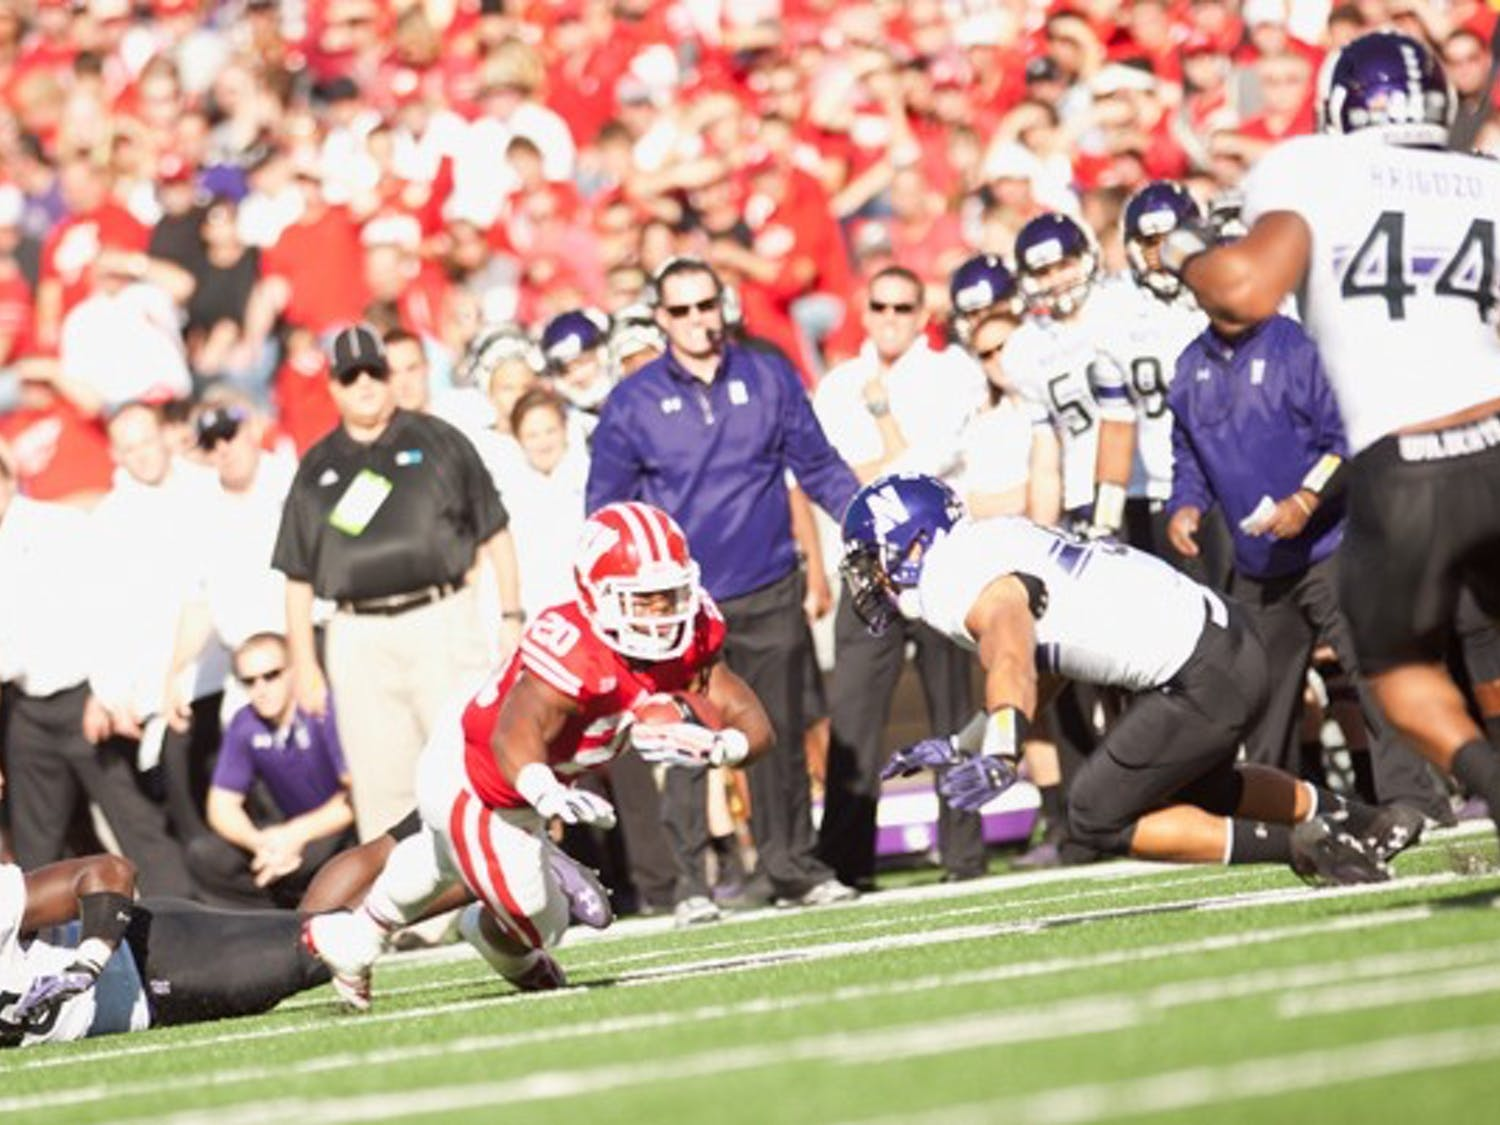 Badgers defeat the Wildcats 35 to 6 in Badger Homecoming game Saturday October 12.